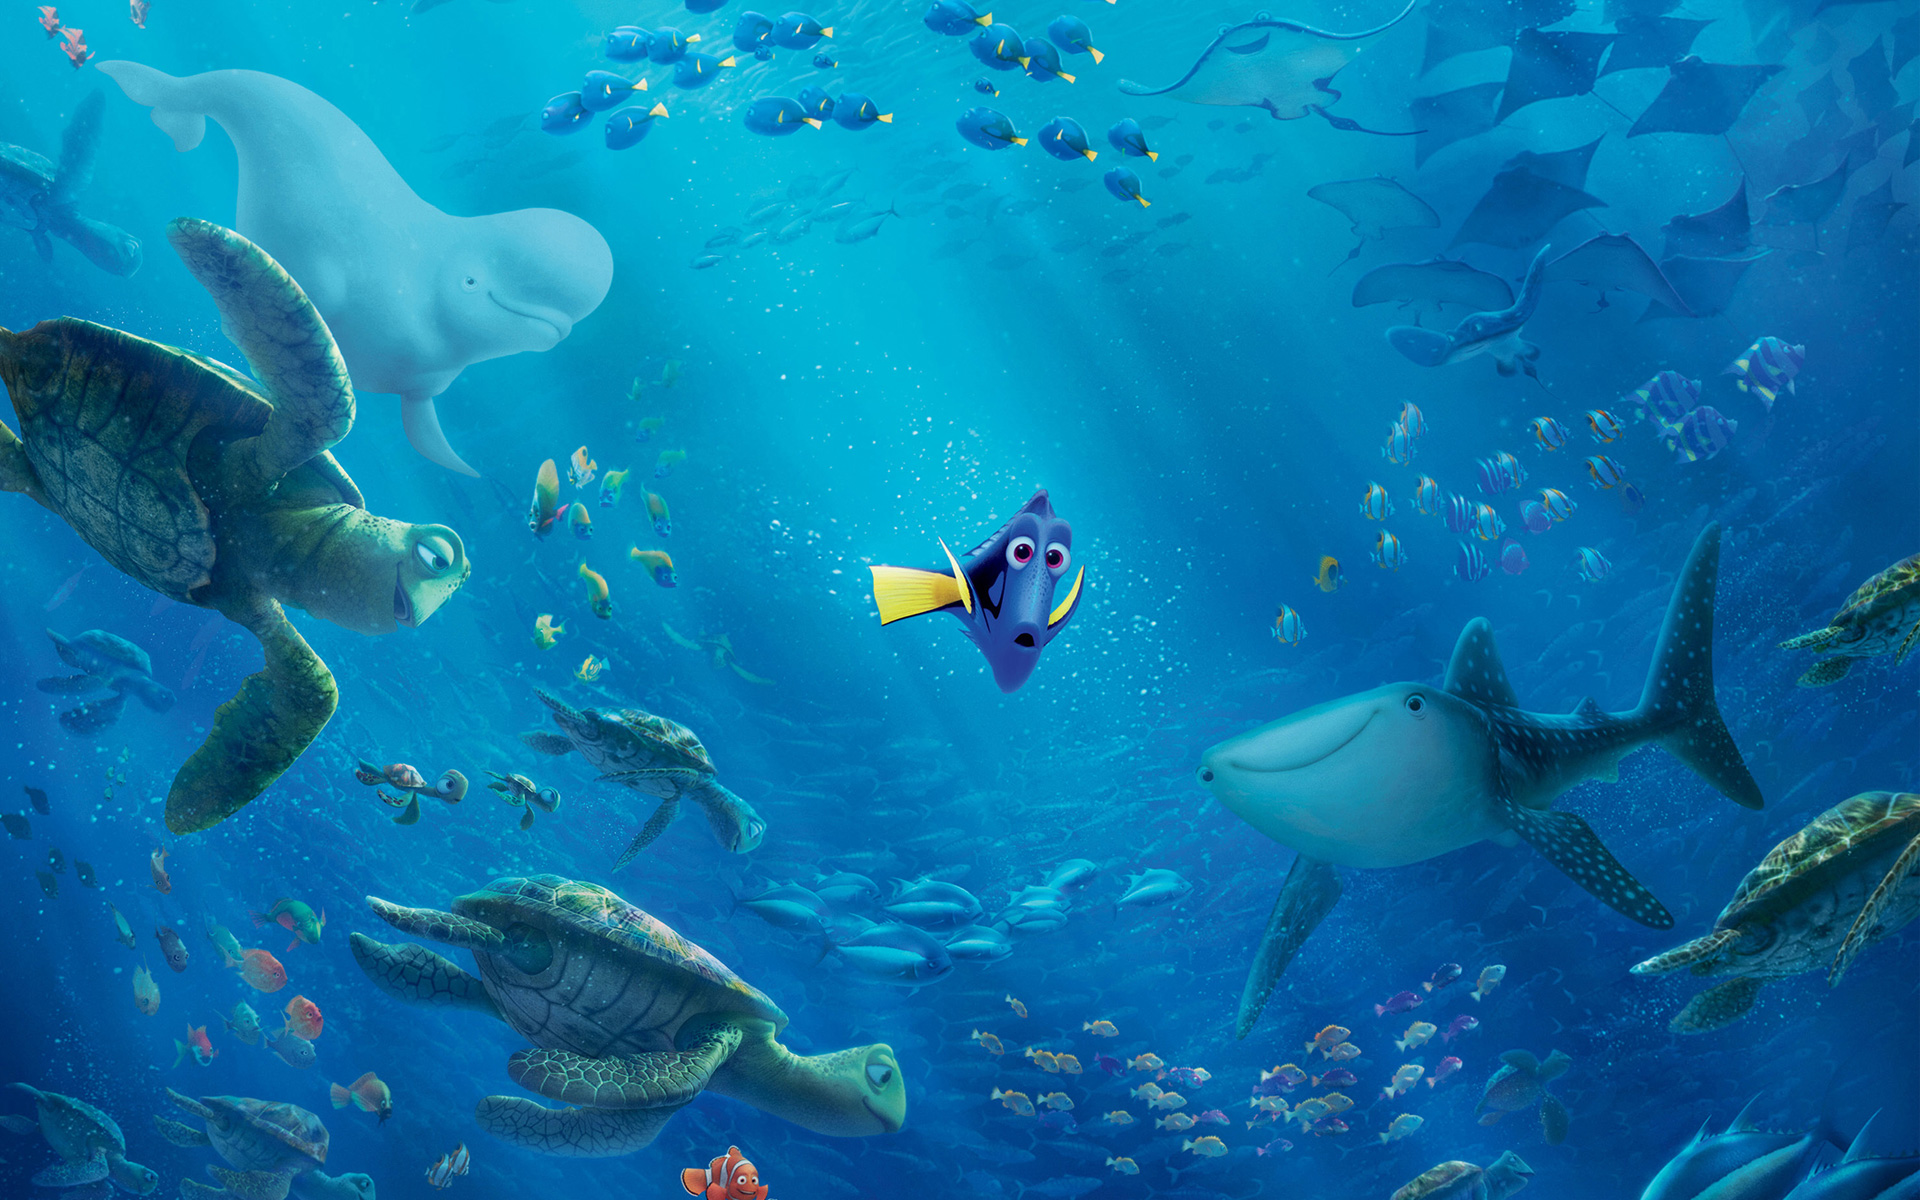 Haunted Mansion Iphone Wallpaper Buscando A Dory Wallpapers Finding Dory Disney Fondos Hd